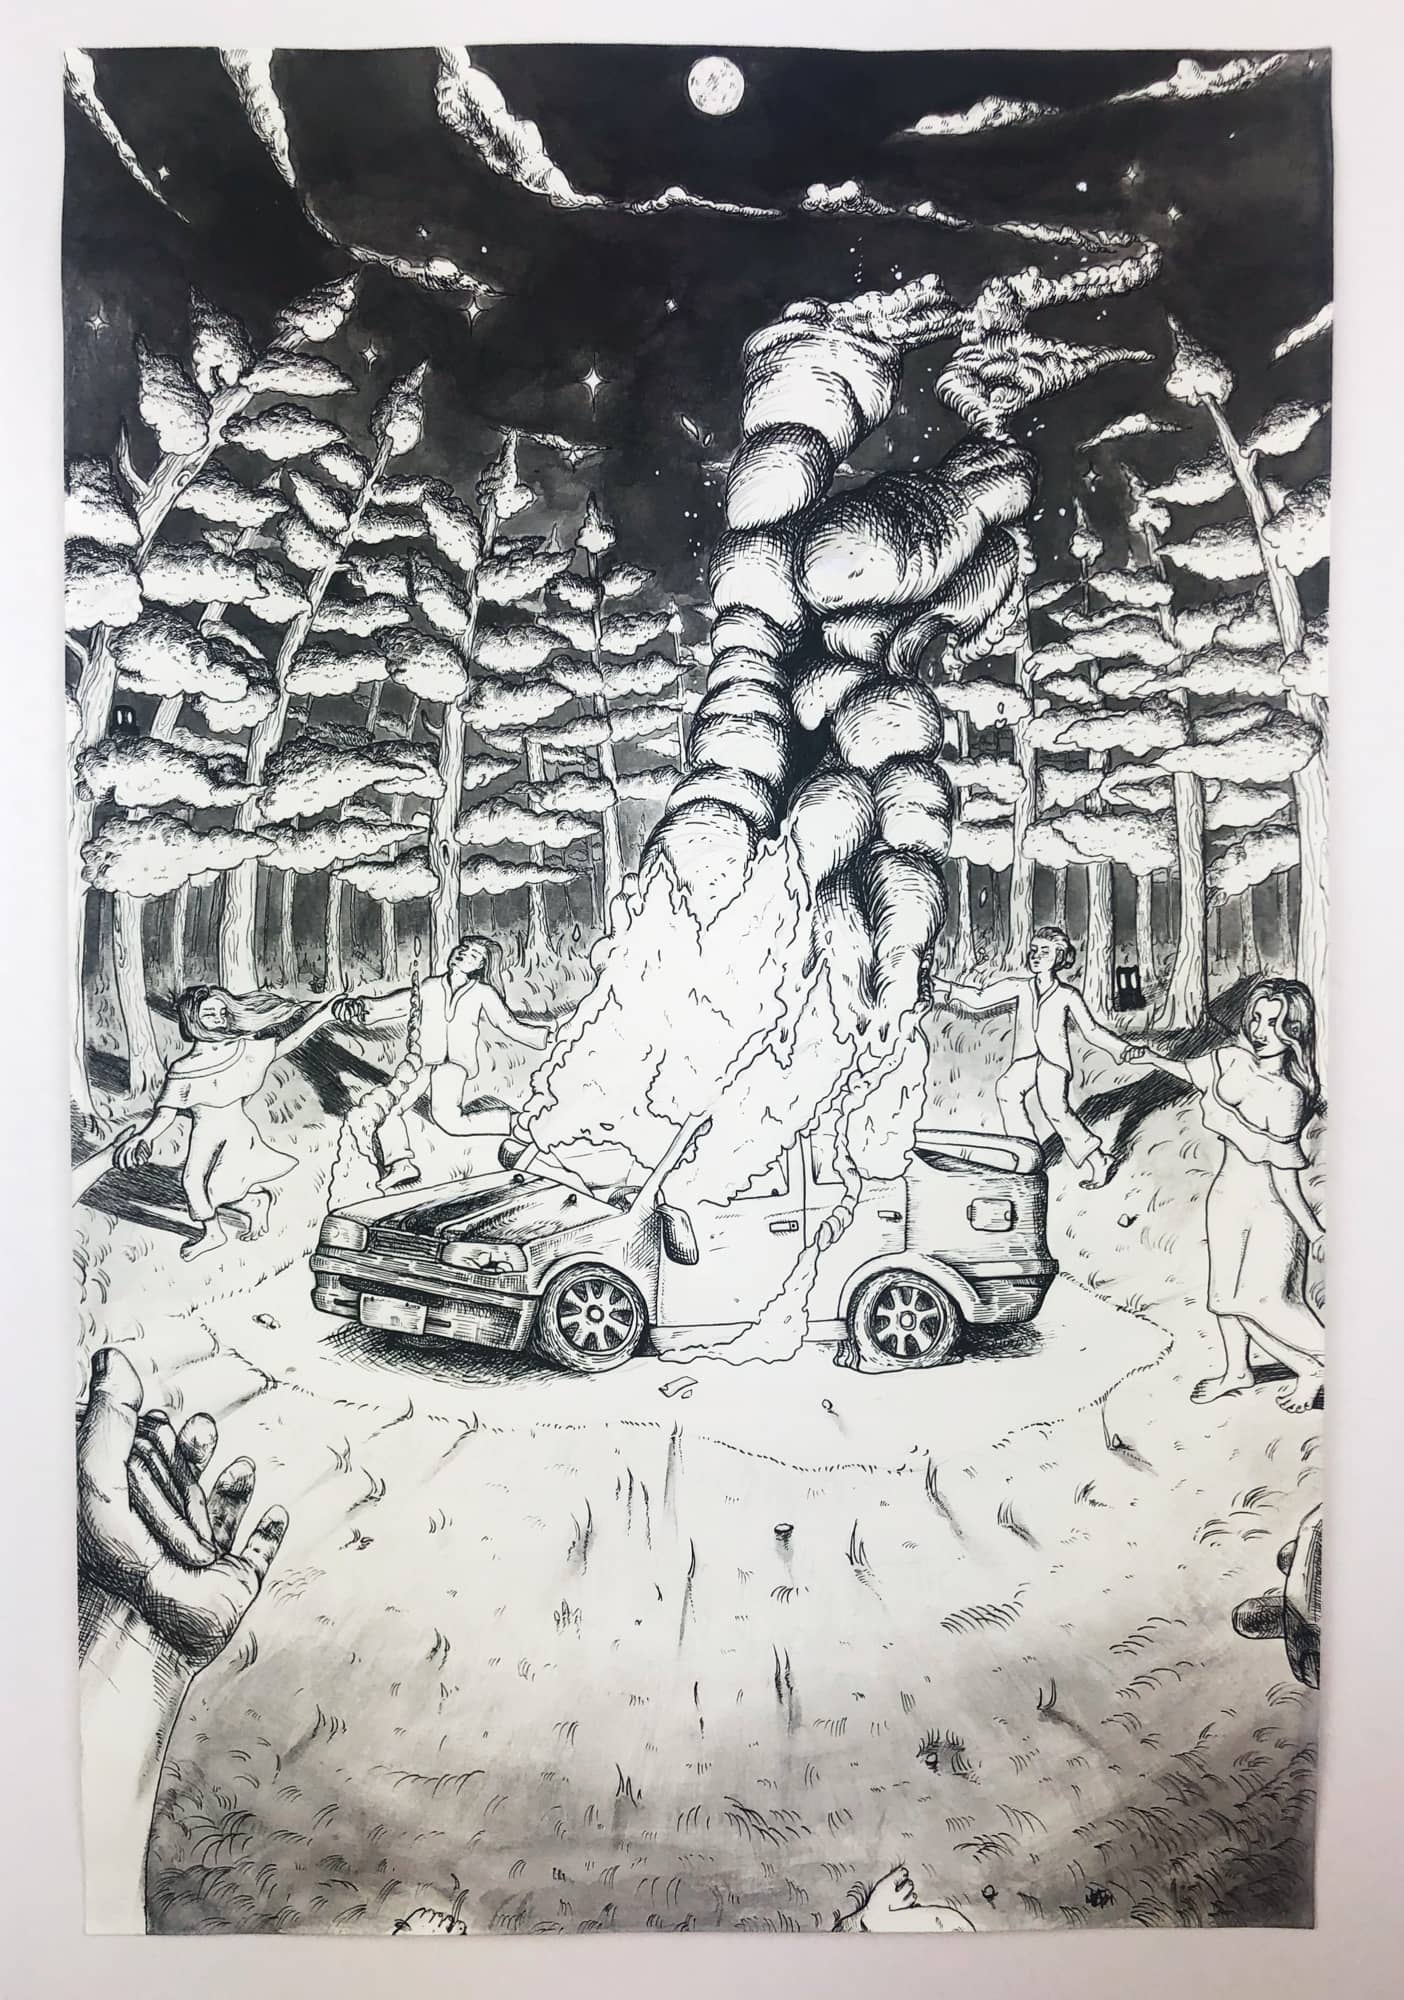 Drawing of a car on fire by Mia Lum